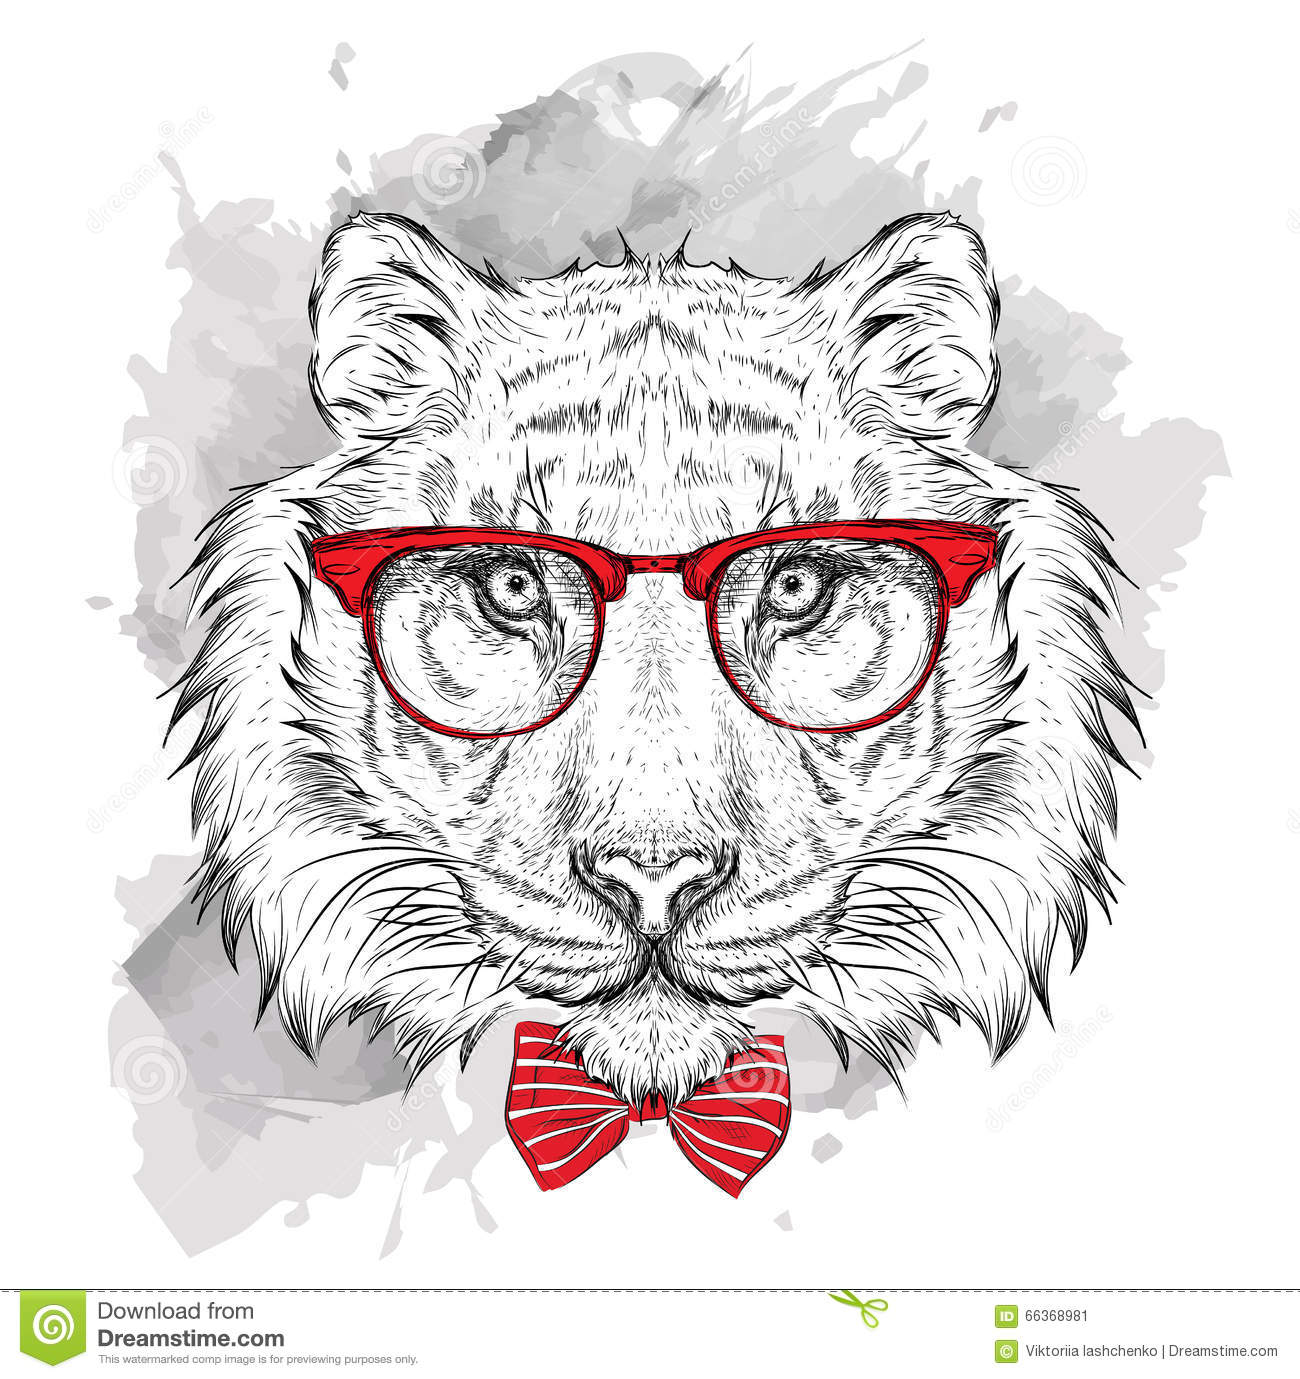 ff284c484cbbd Image Portrait tiger in the cravat and with glasses. Hand draw vector  illustration.